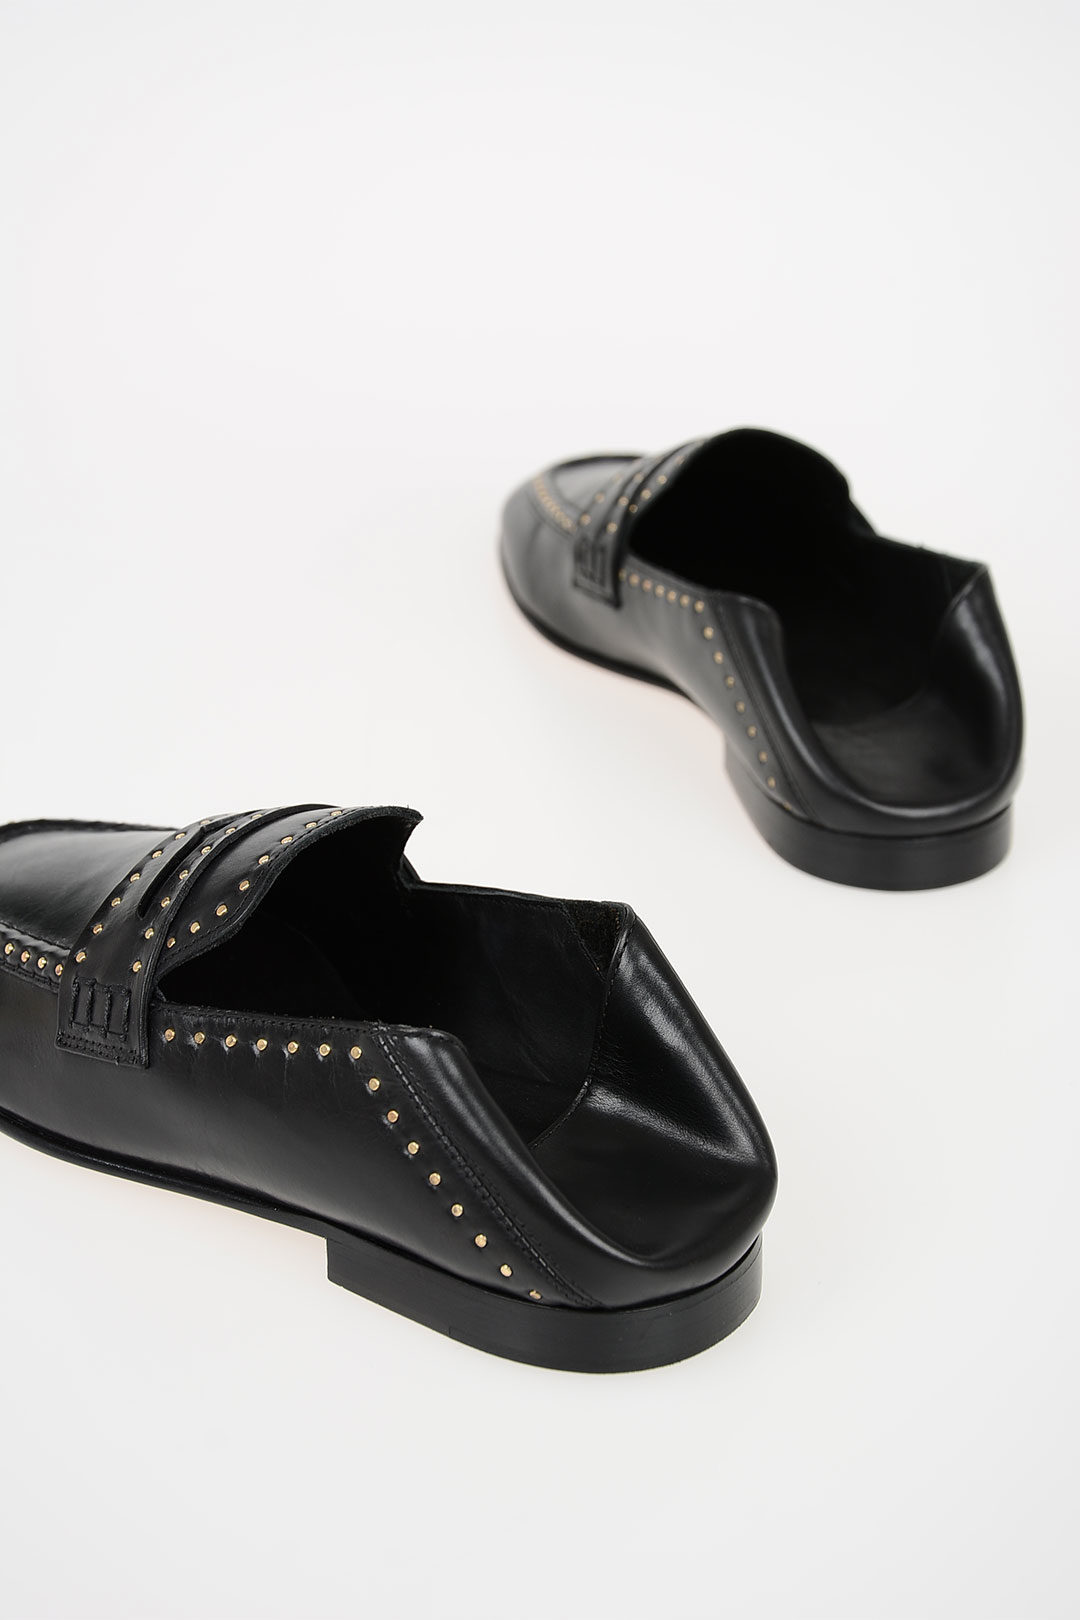 42d2268c9c Isabel Marant Studded Leather FEZZY Loafers women - Glamood Outlet